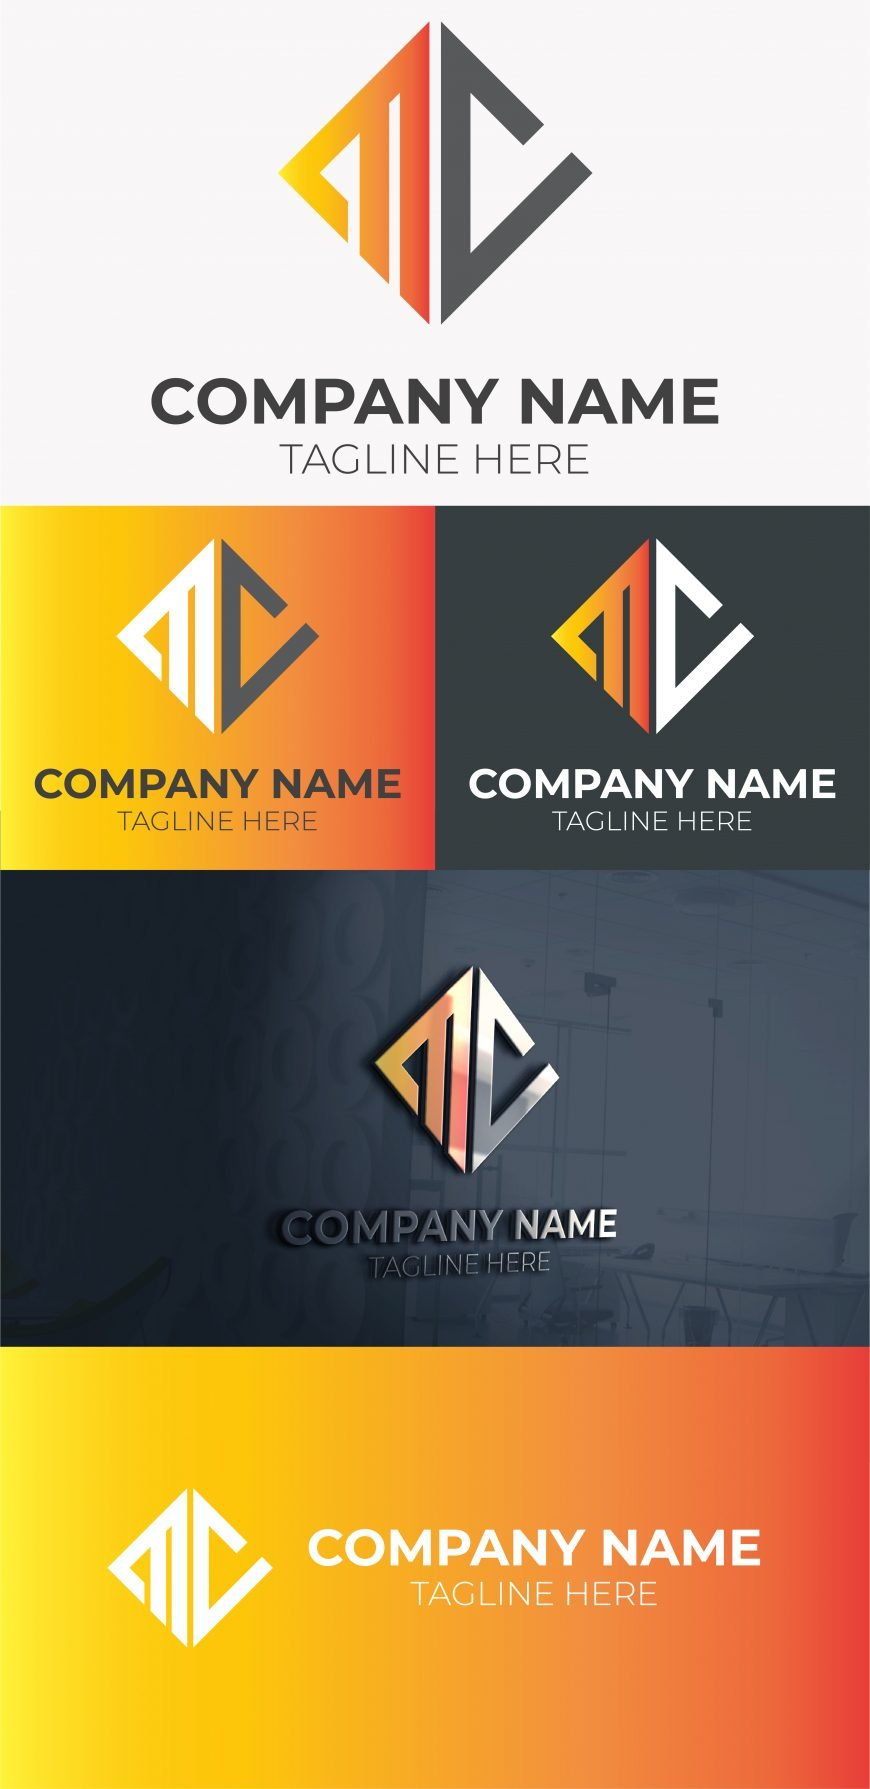 initial-mc-letter-logo-free-template-1-scaled